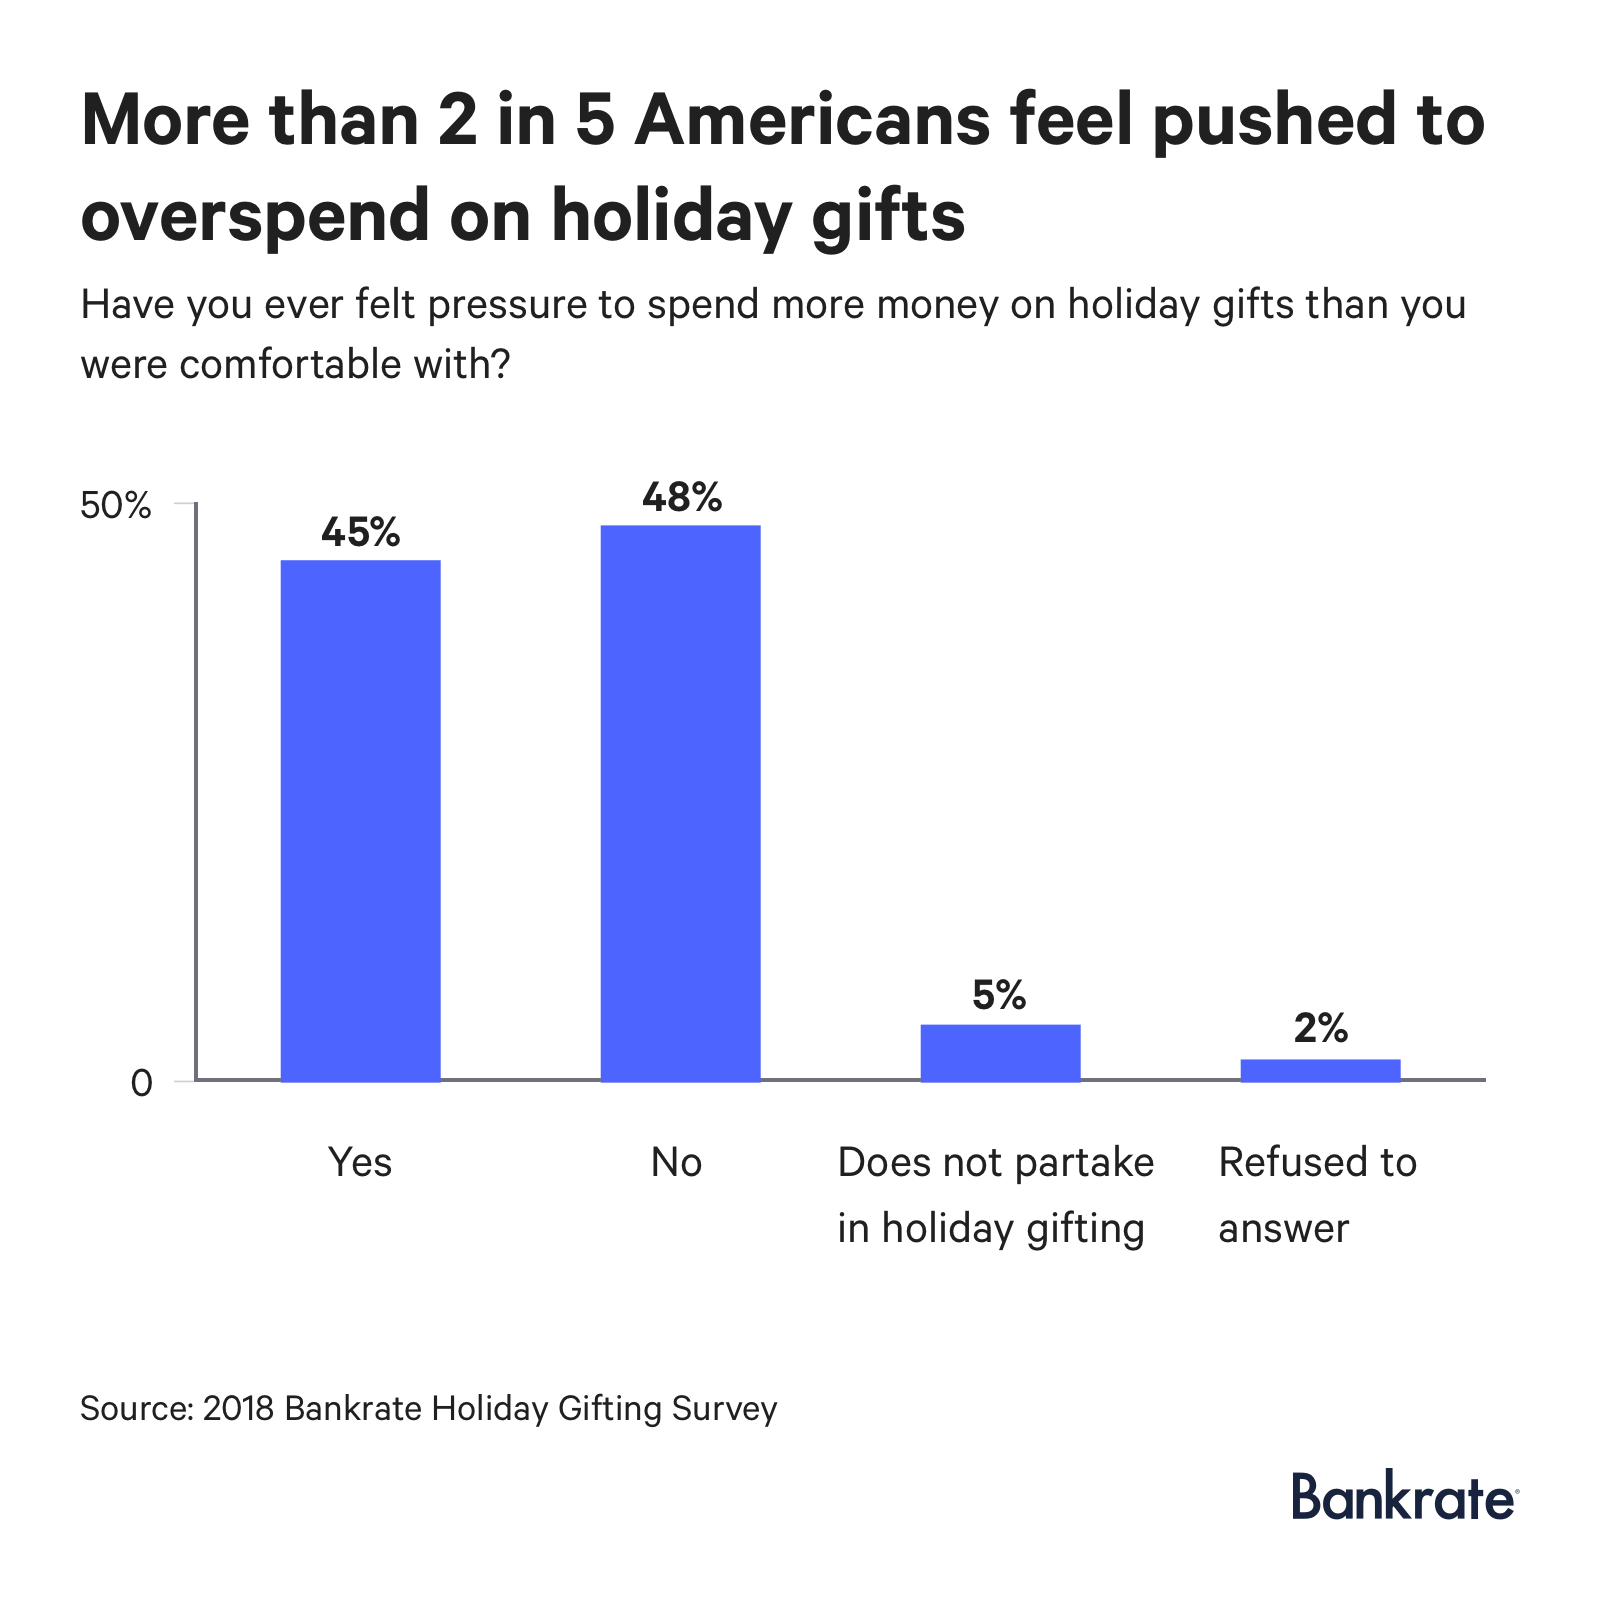 48% of Americans feel pressured to spend more on holiday gifts